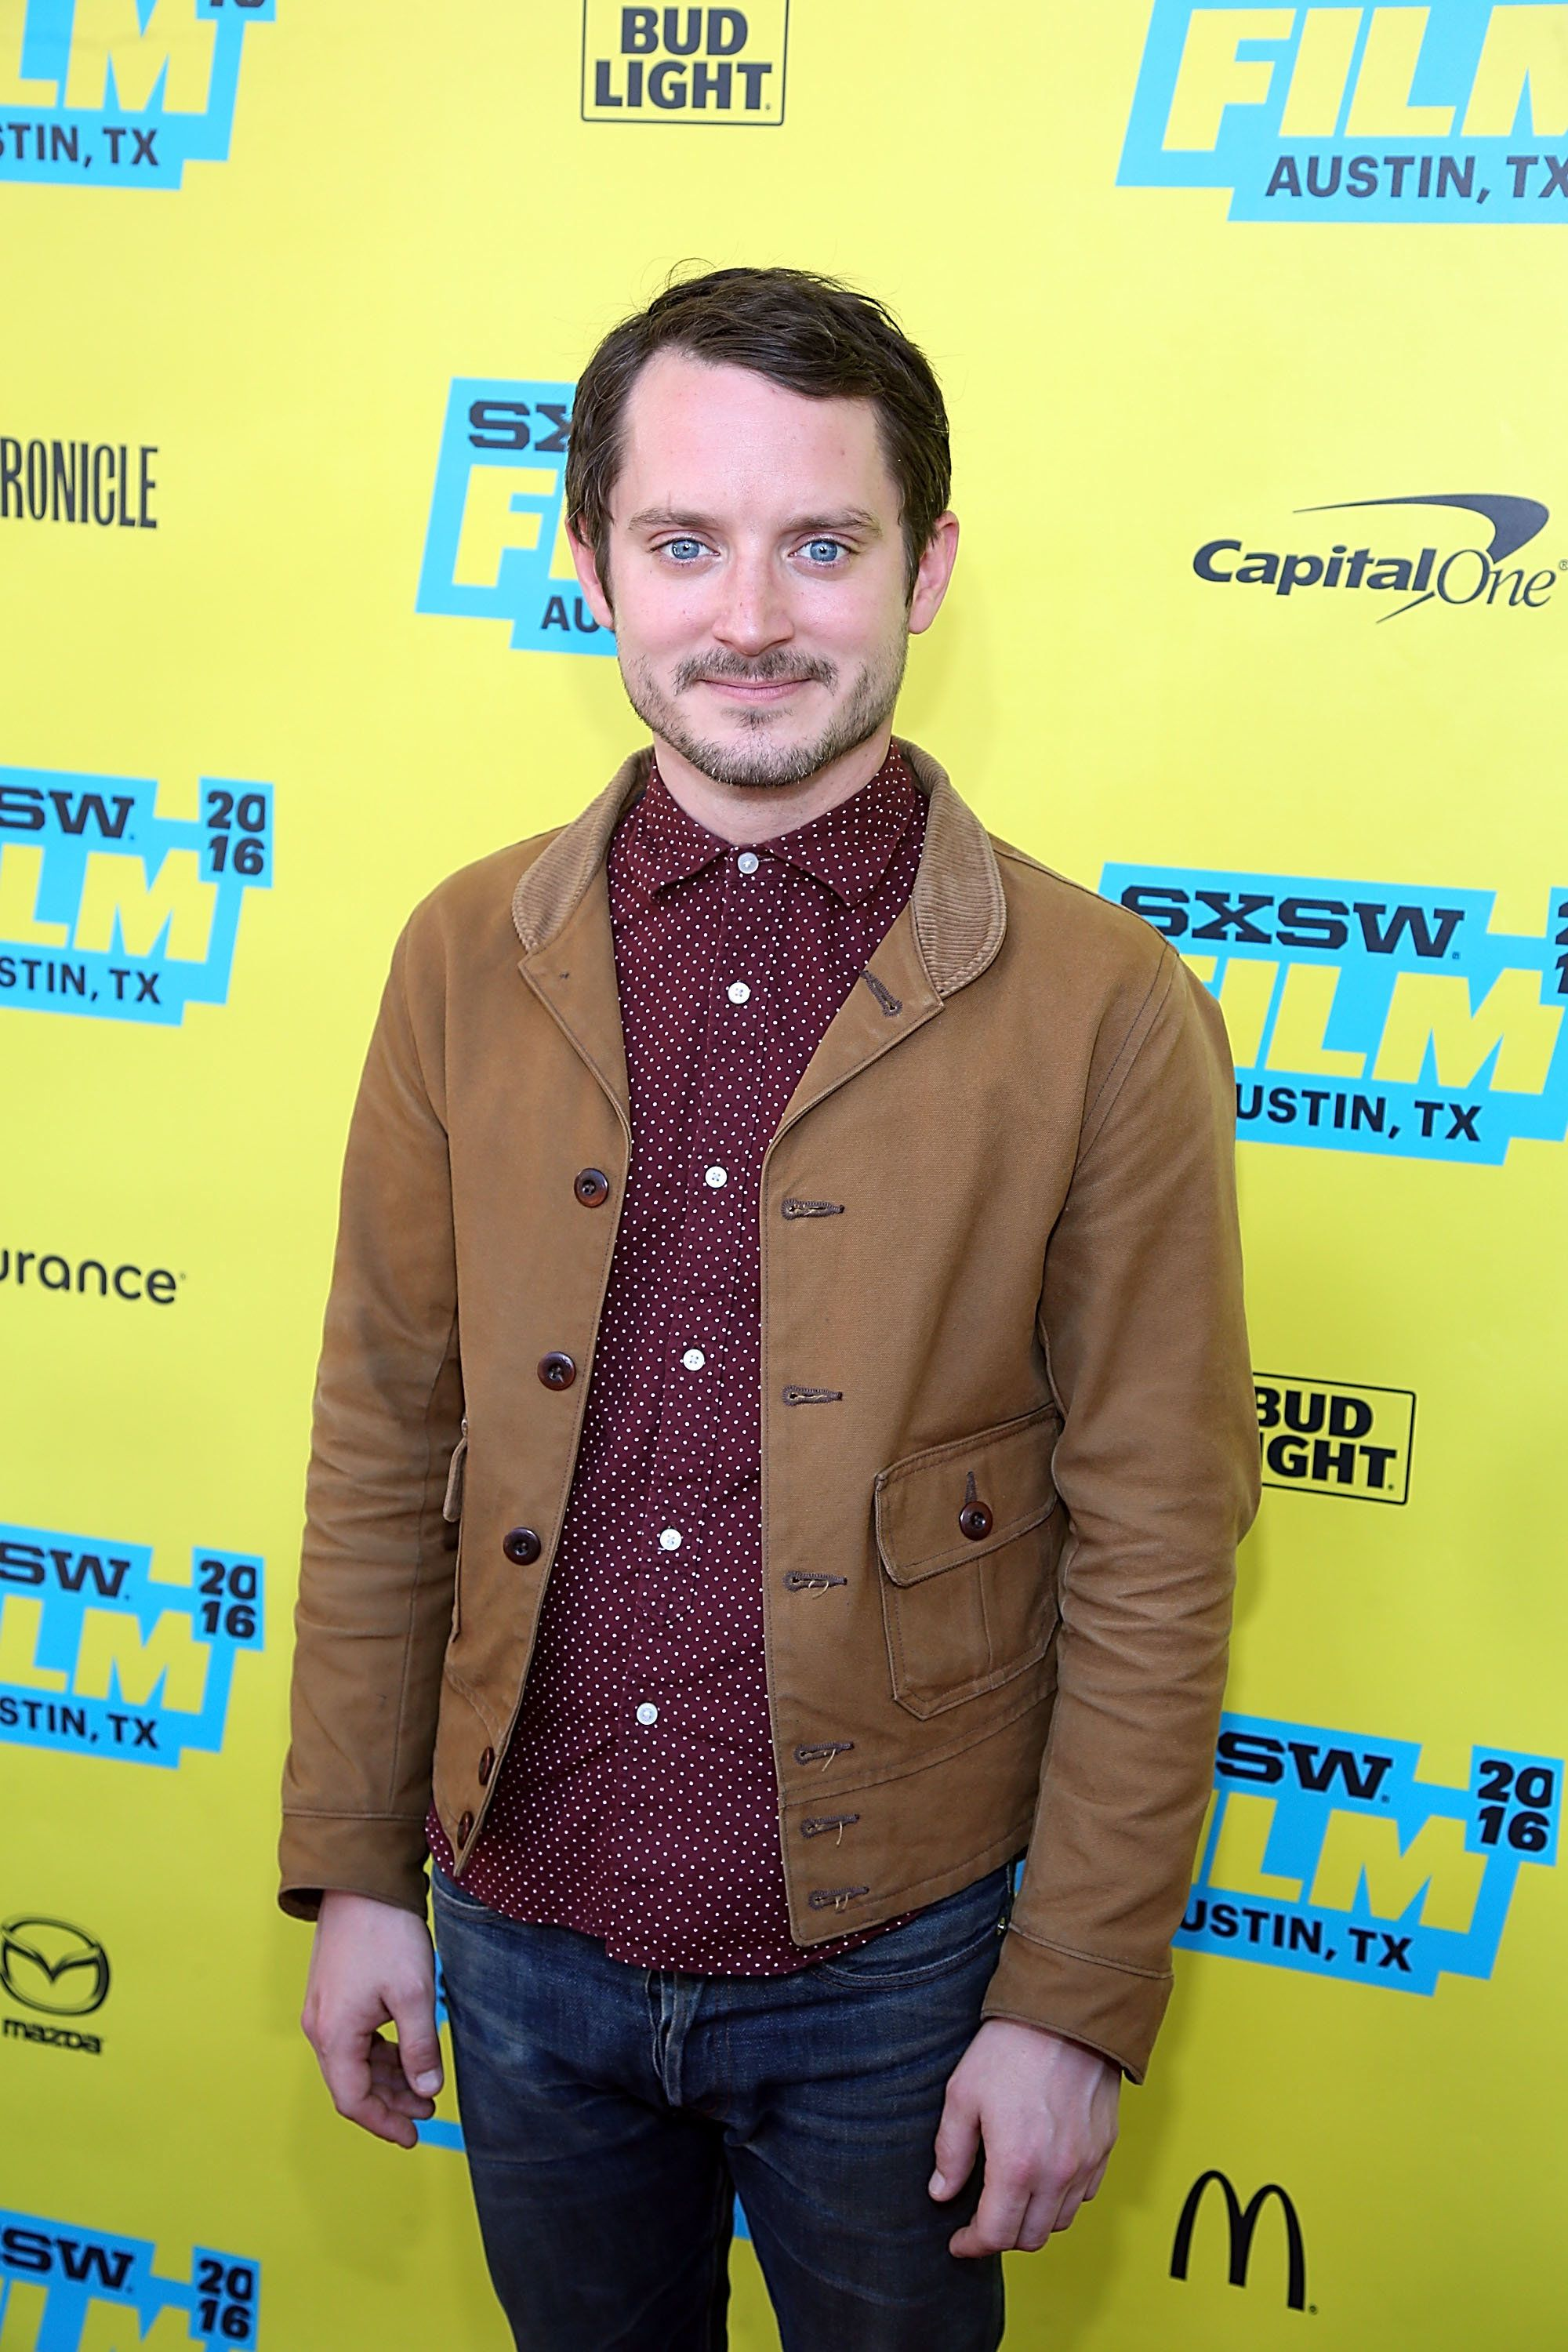 AUSTIN, TX - MARCH 13:  Elijah Wood attends the premiere of 'The Trust' at the Paramount Theater during the SXSW Film-Interactive-Music festival on March 13, 2016 in Austin, Texas.  (Photo by Gary Miller/Getty Images)